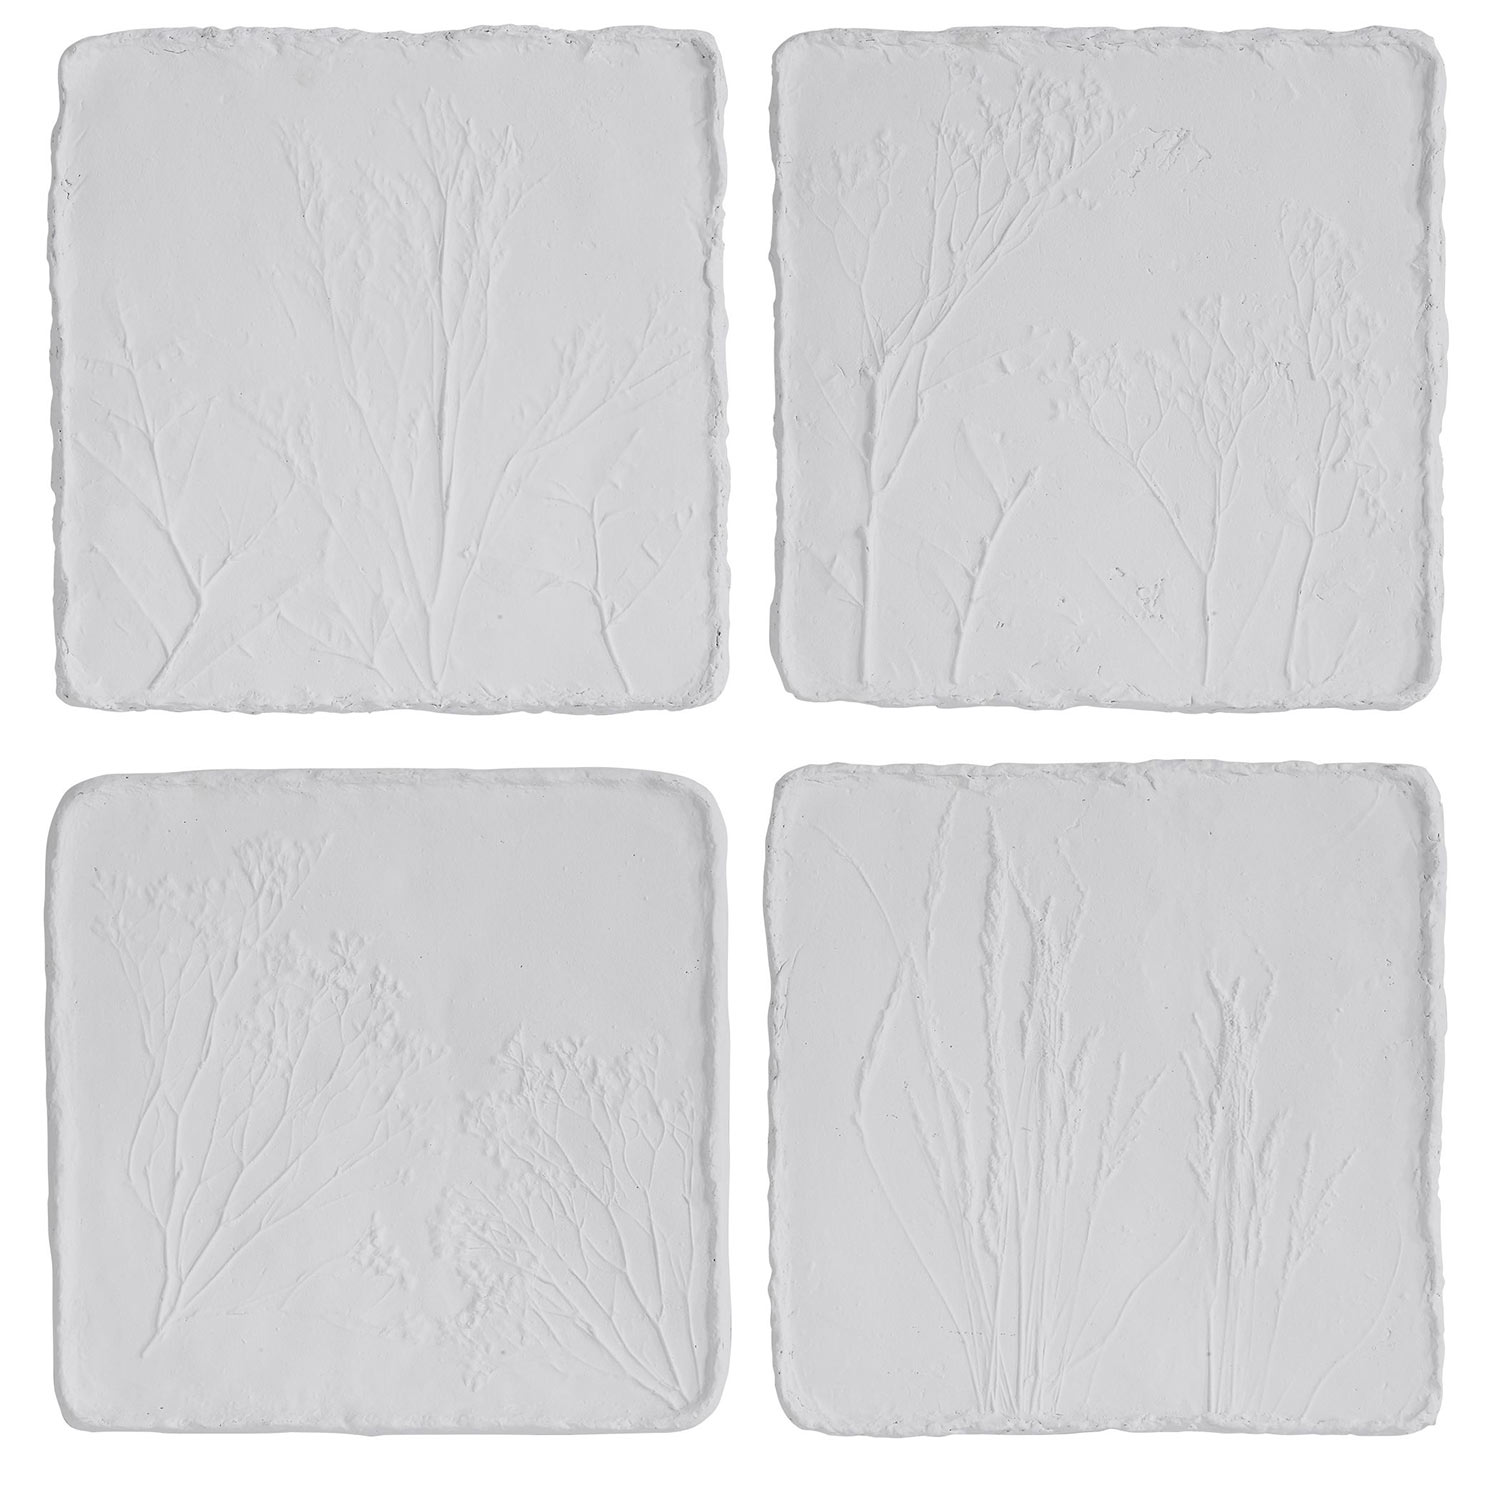 Angeline Floral Wall Decor - Set of 4